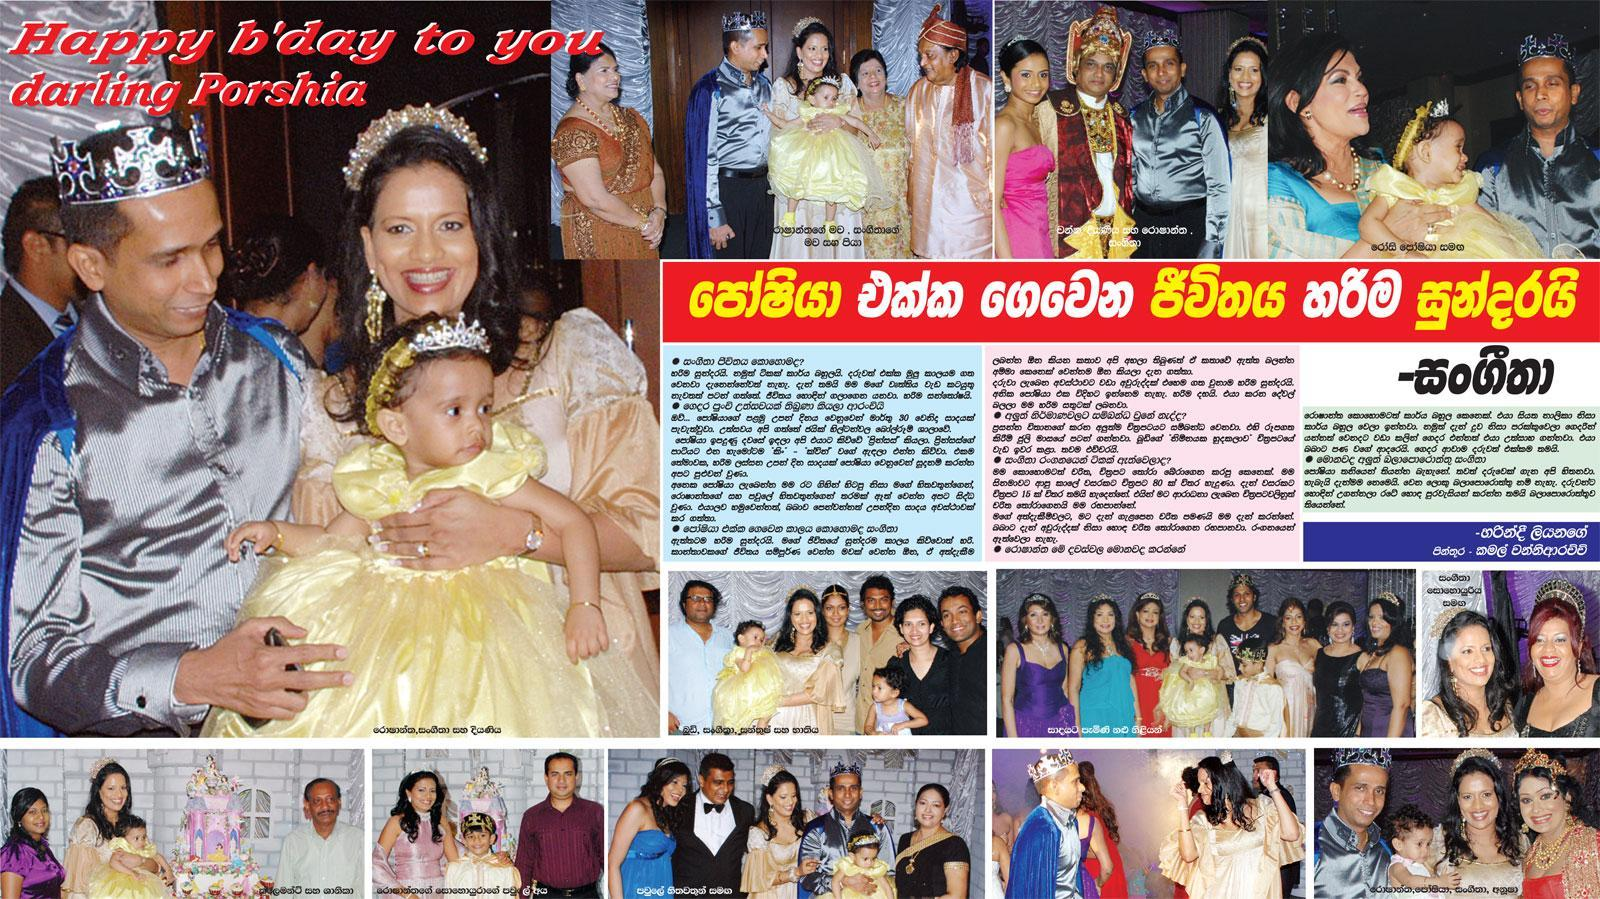 Sangeetha Weeraratne and daughter